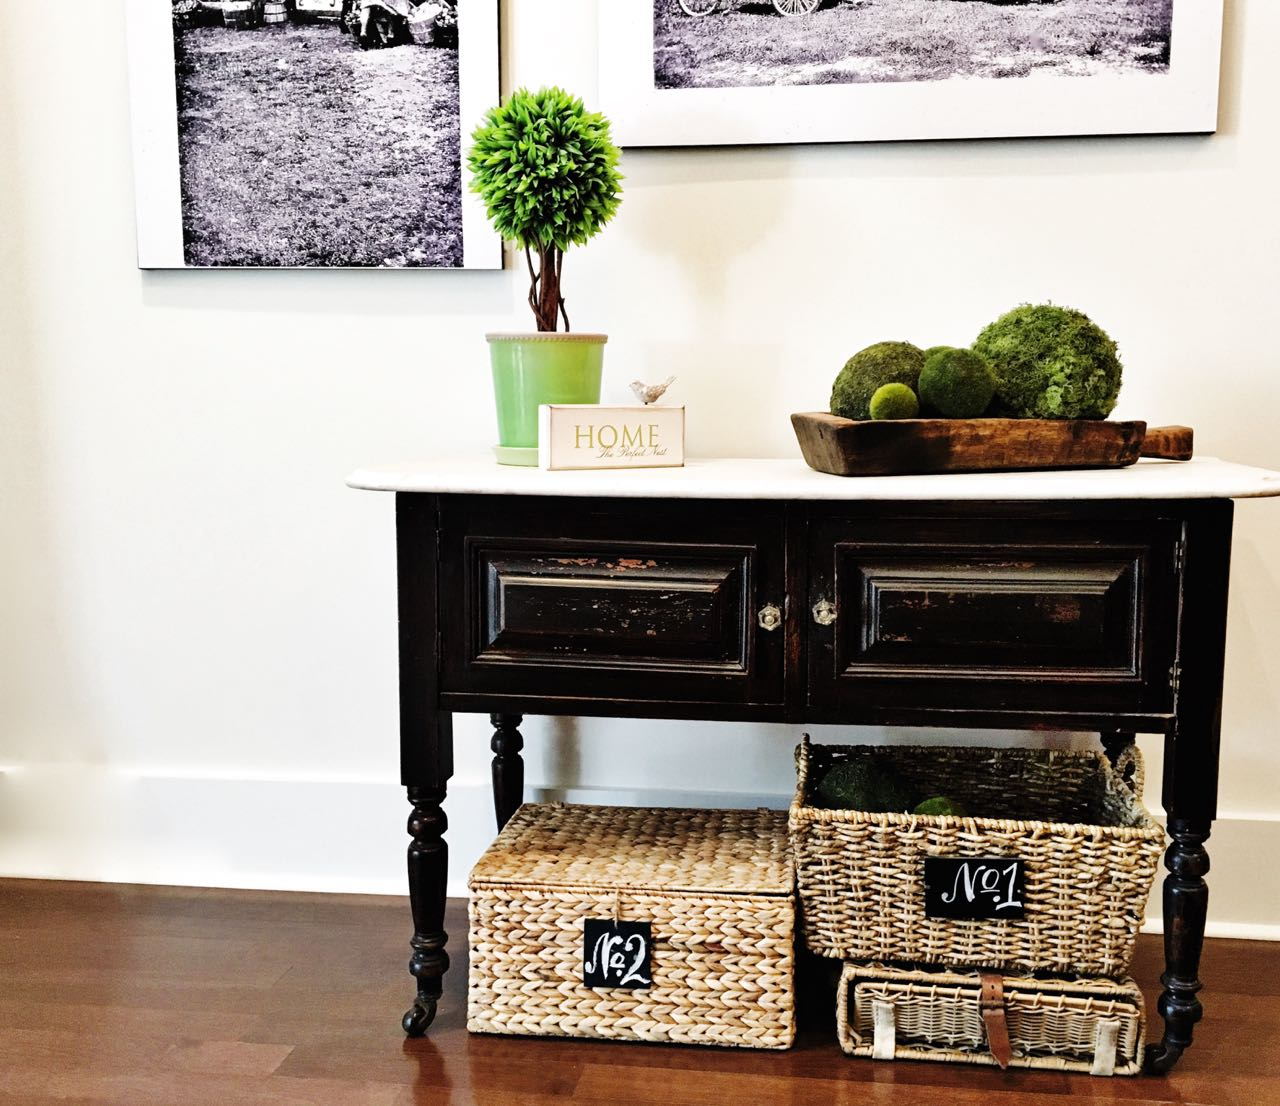 This vintage antque table looks beautiful underneath the engineer print wall decor. The baskets with chalkboards add texture.